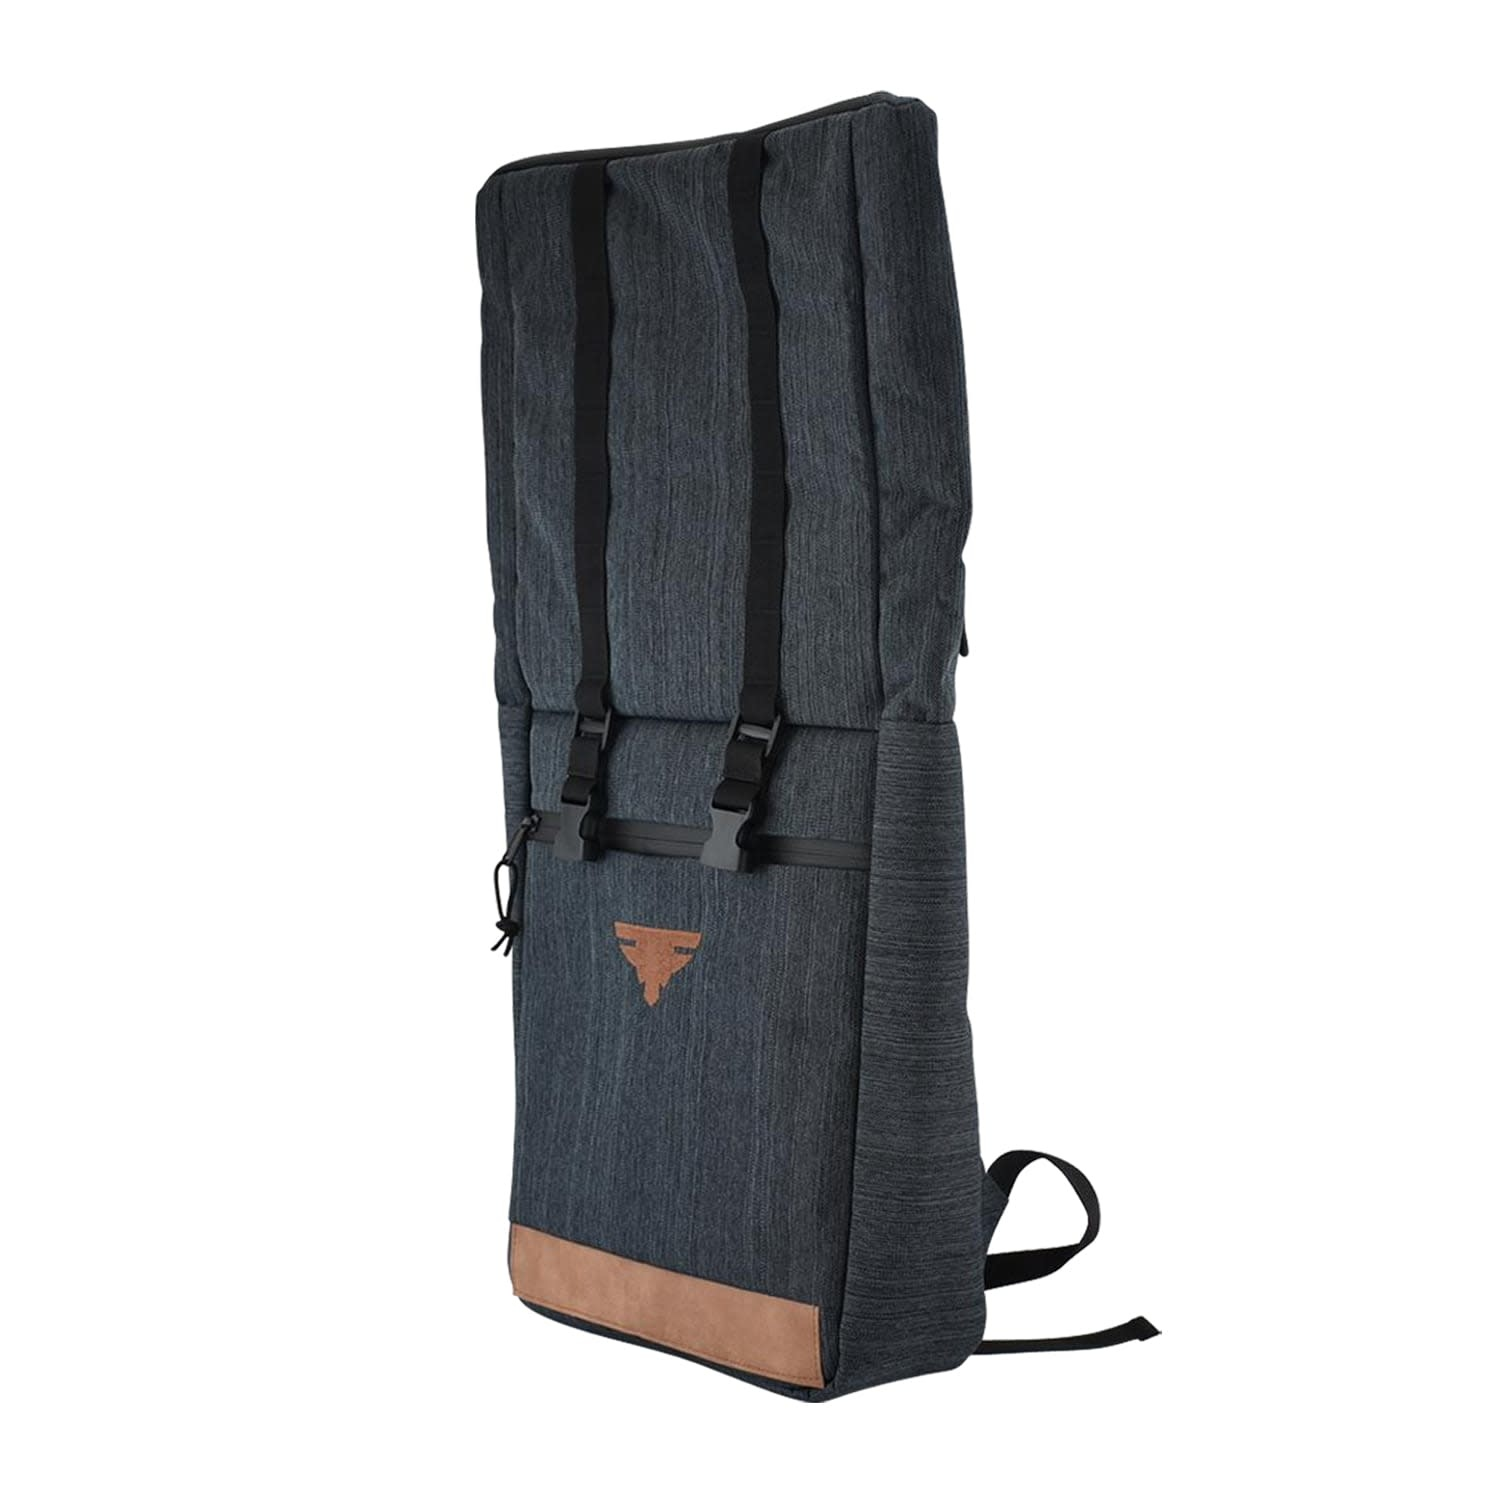 PAYLOAD ROLL TOP BACK PACK